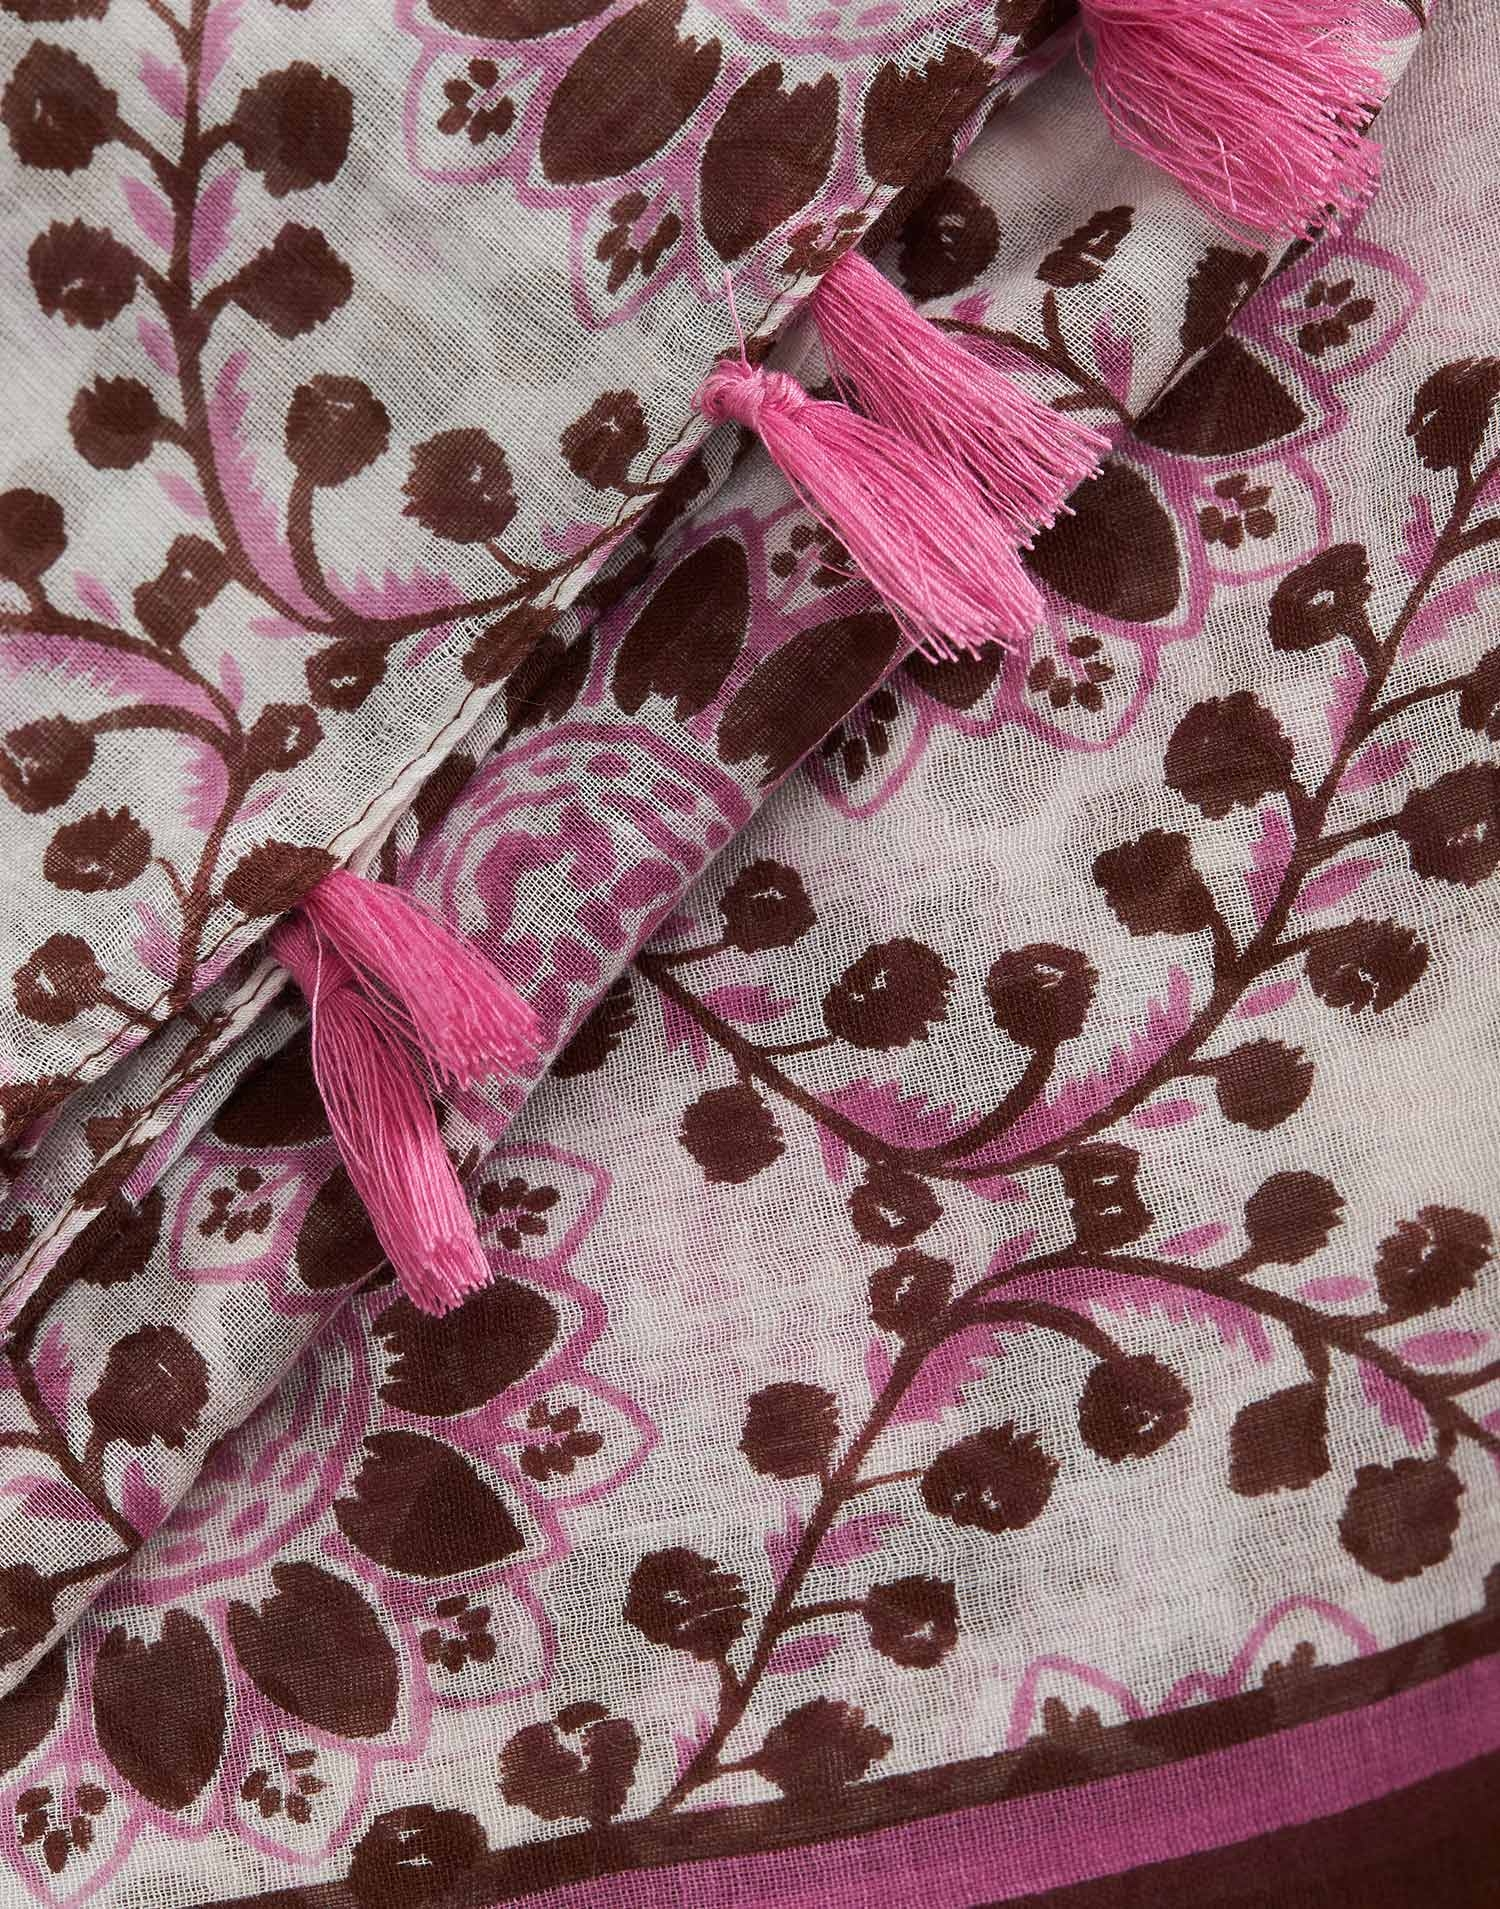 Floral waves printed foulard